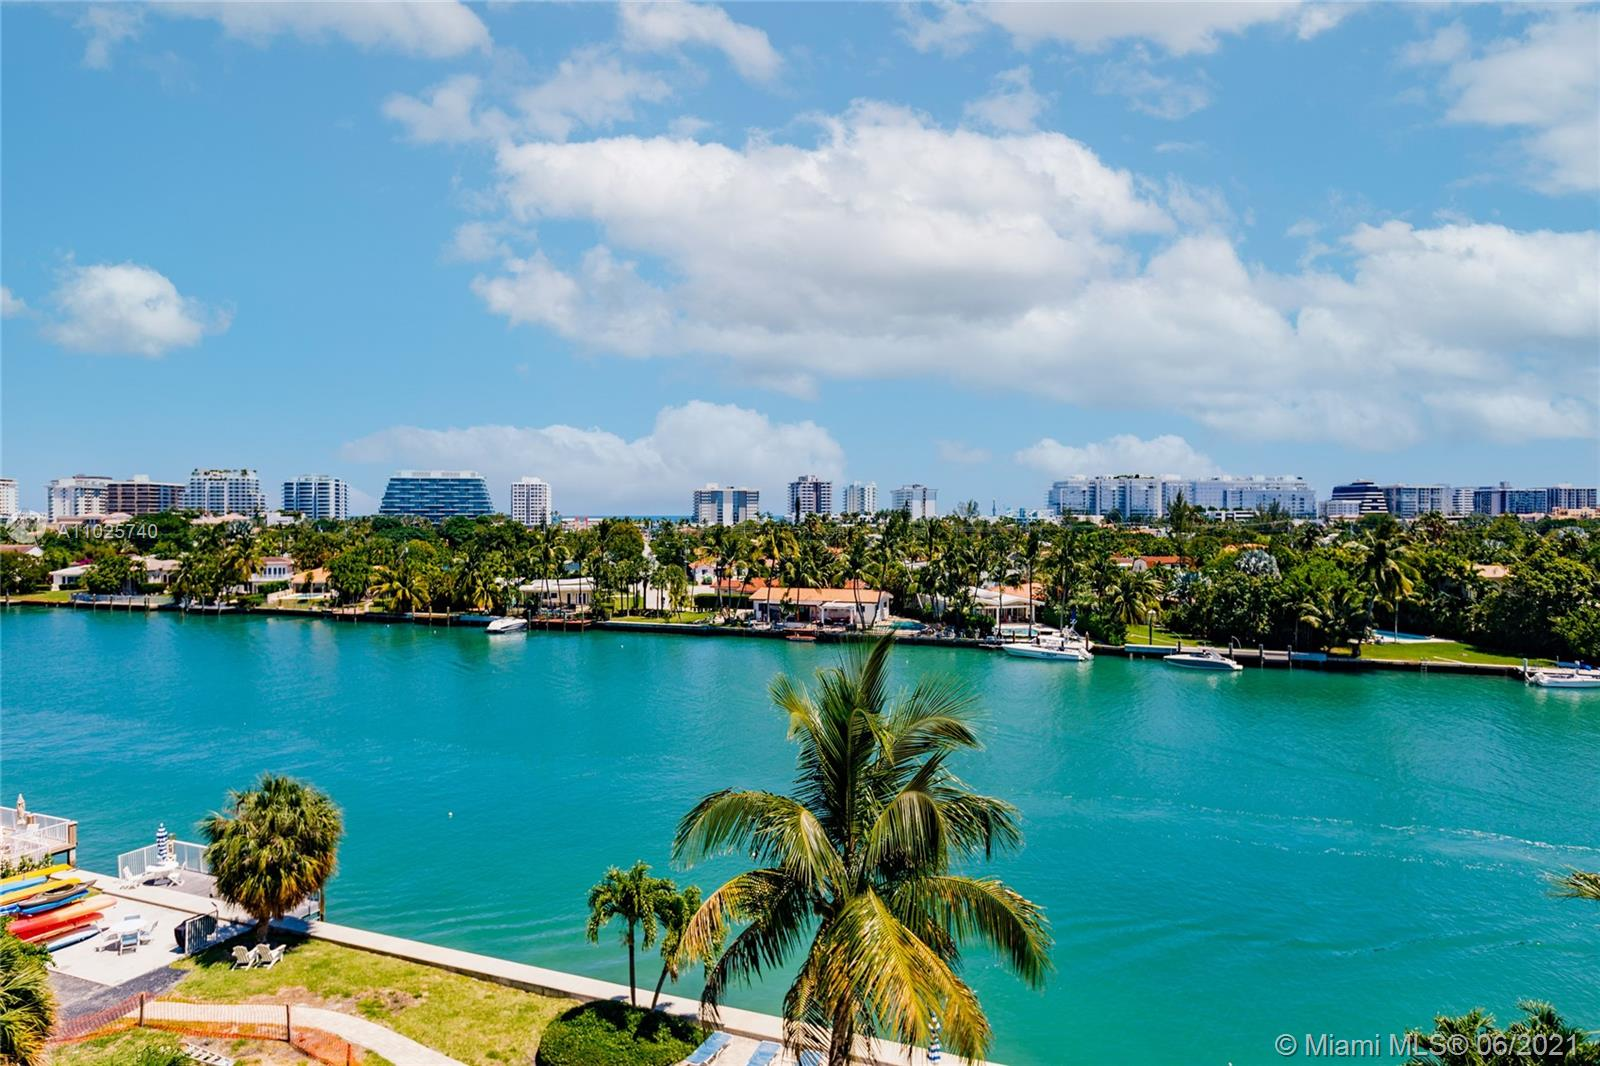 Unparalleled views from this bright and spacious condo in Bay Harbor Islands. Oversized balcony with East views of the Bay, Ocean and Skyline.  This unit is in pristine condition, with generous bedrooms, a nicely updated kitchen and plenty of storage space.  The building grounds are beautiful and feature a wonderful pool area in addition to boat slips.  Furniture may be negotiable.